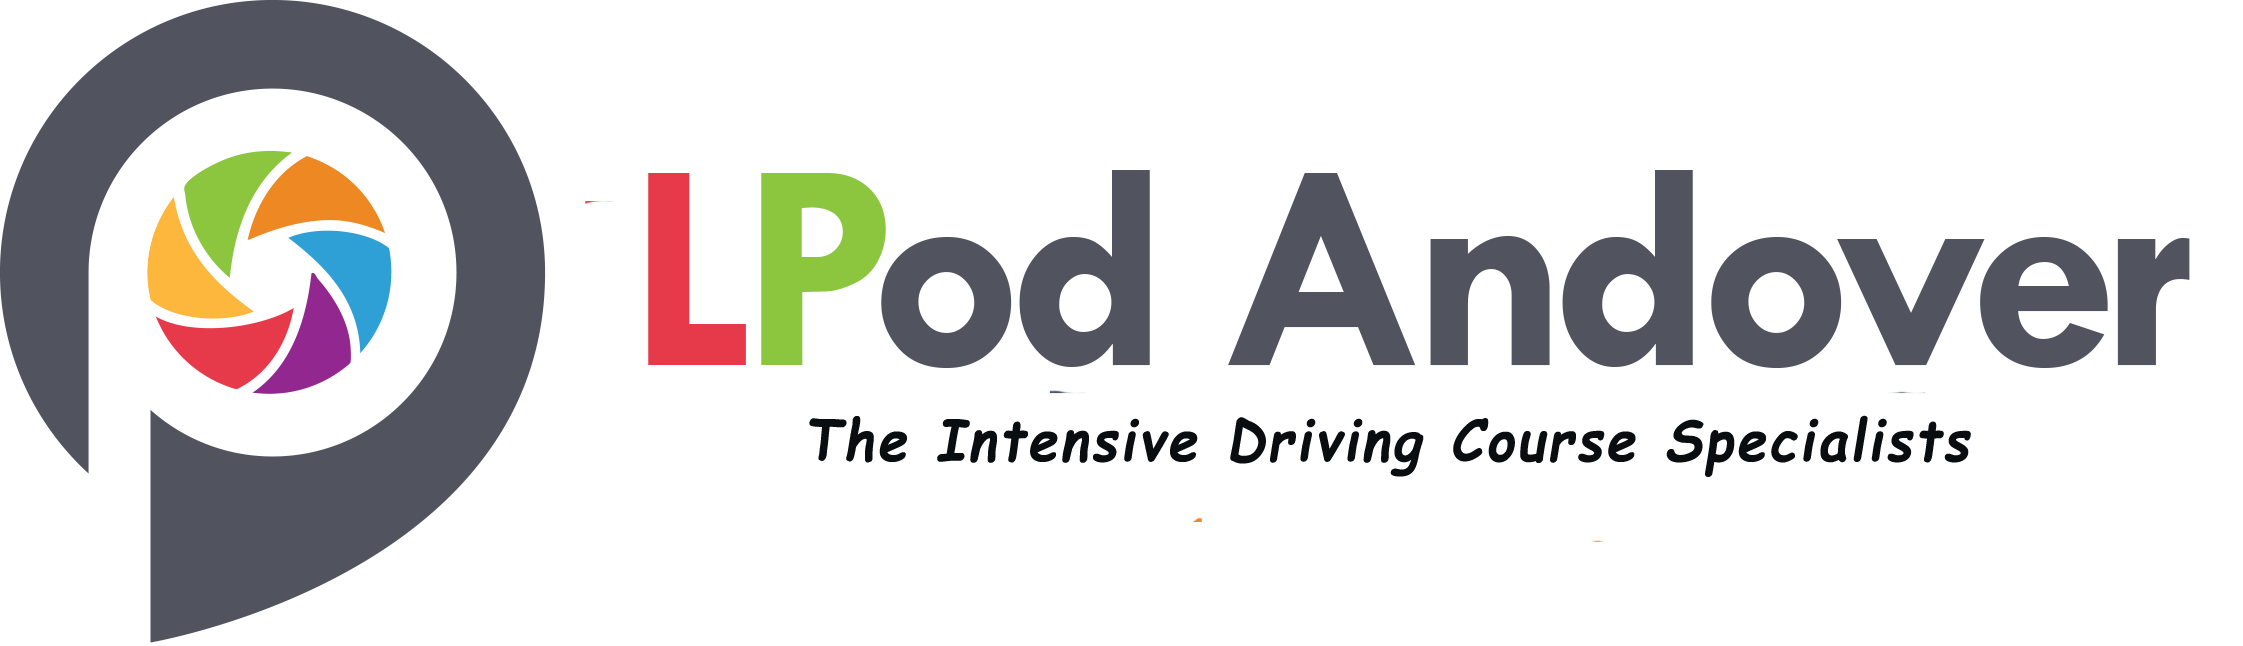 intensive driving coures andover, intensive driving lessons andover, internsive driving school andover, fast pass driving andover, crash driving course andover, one week driving course andover